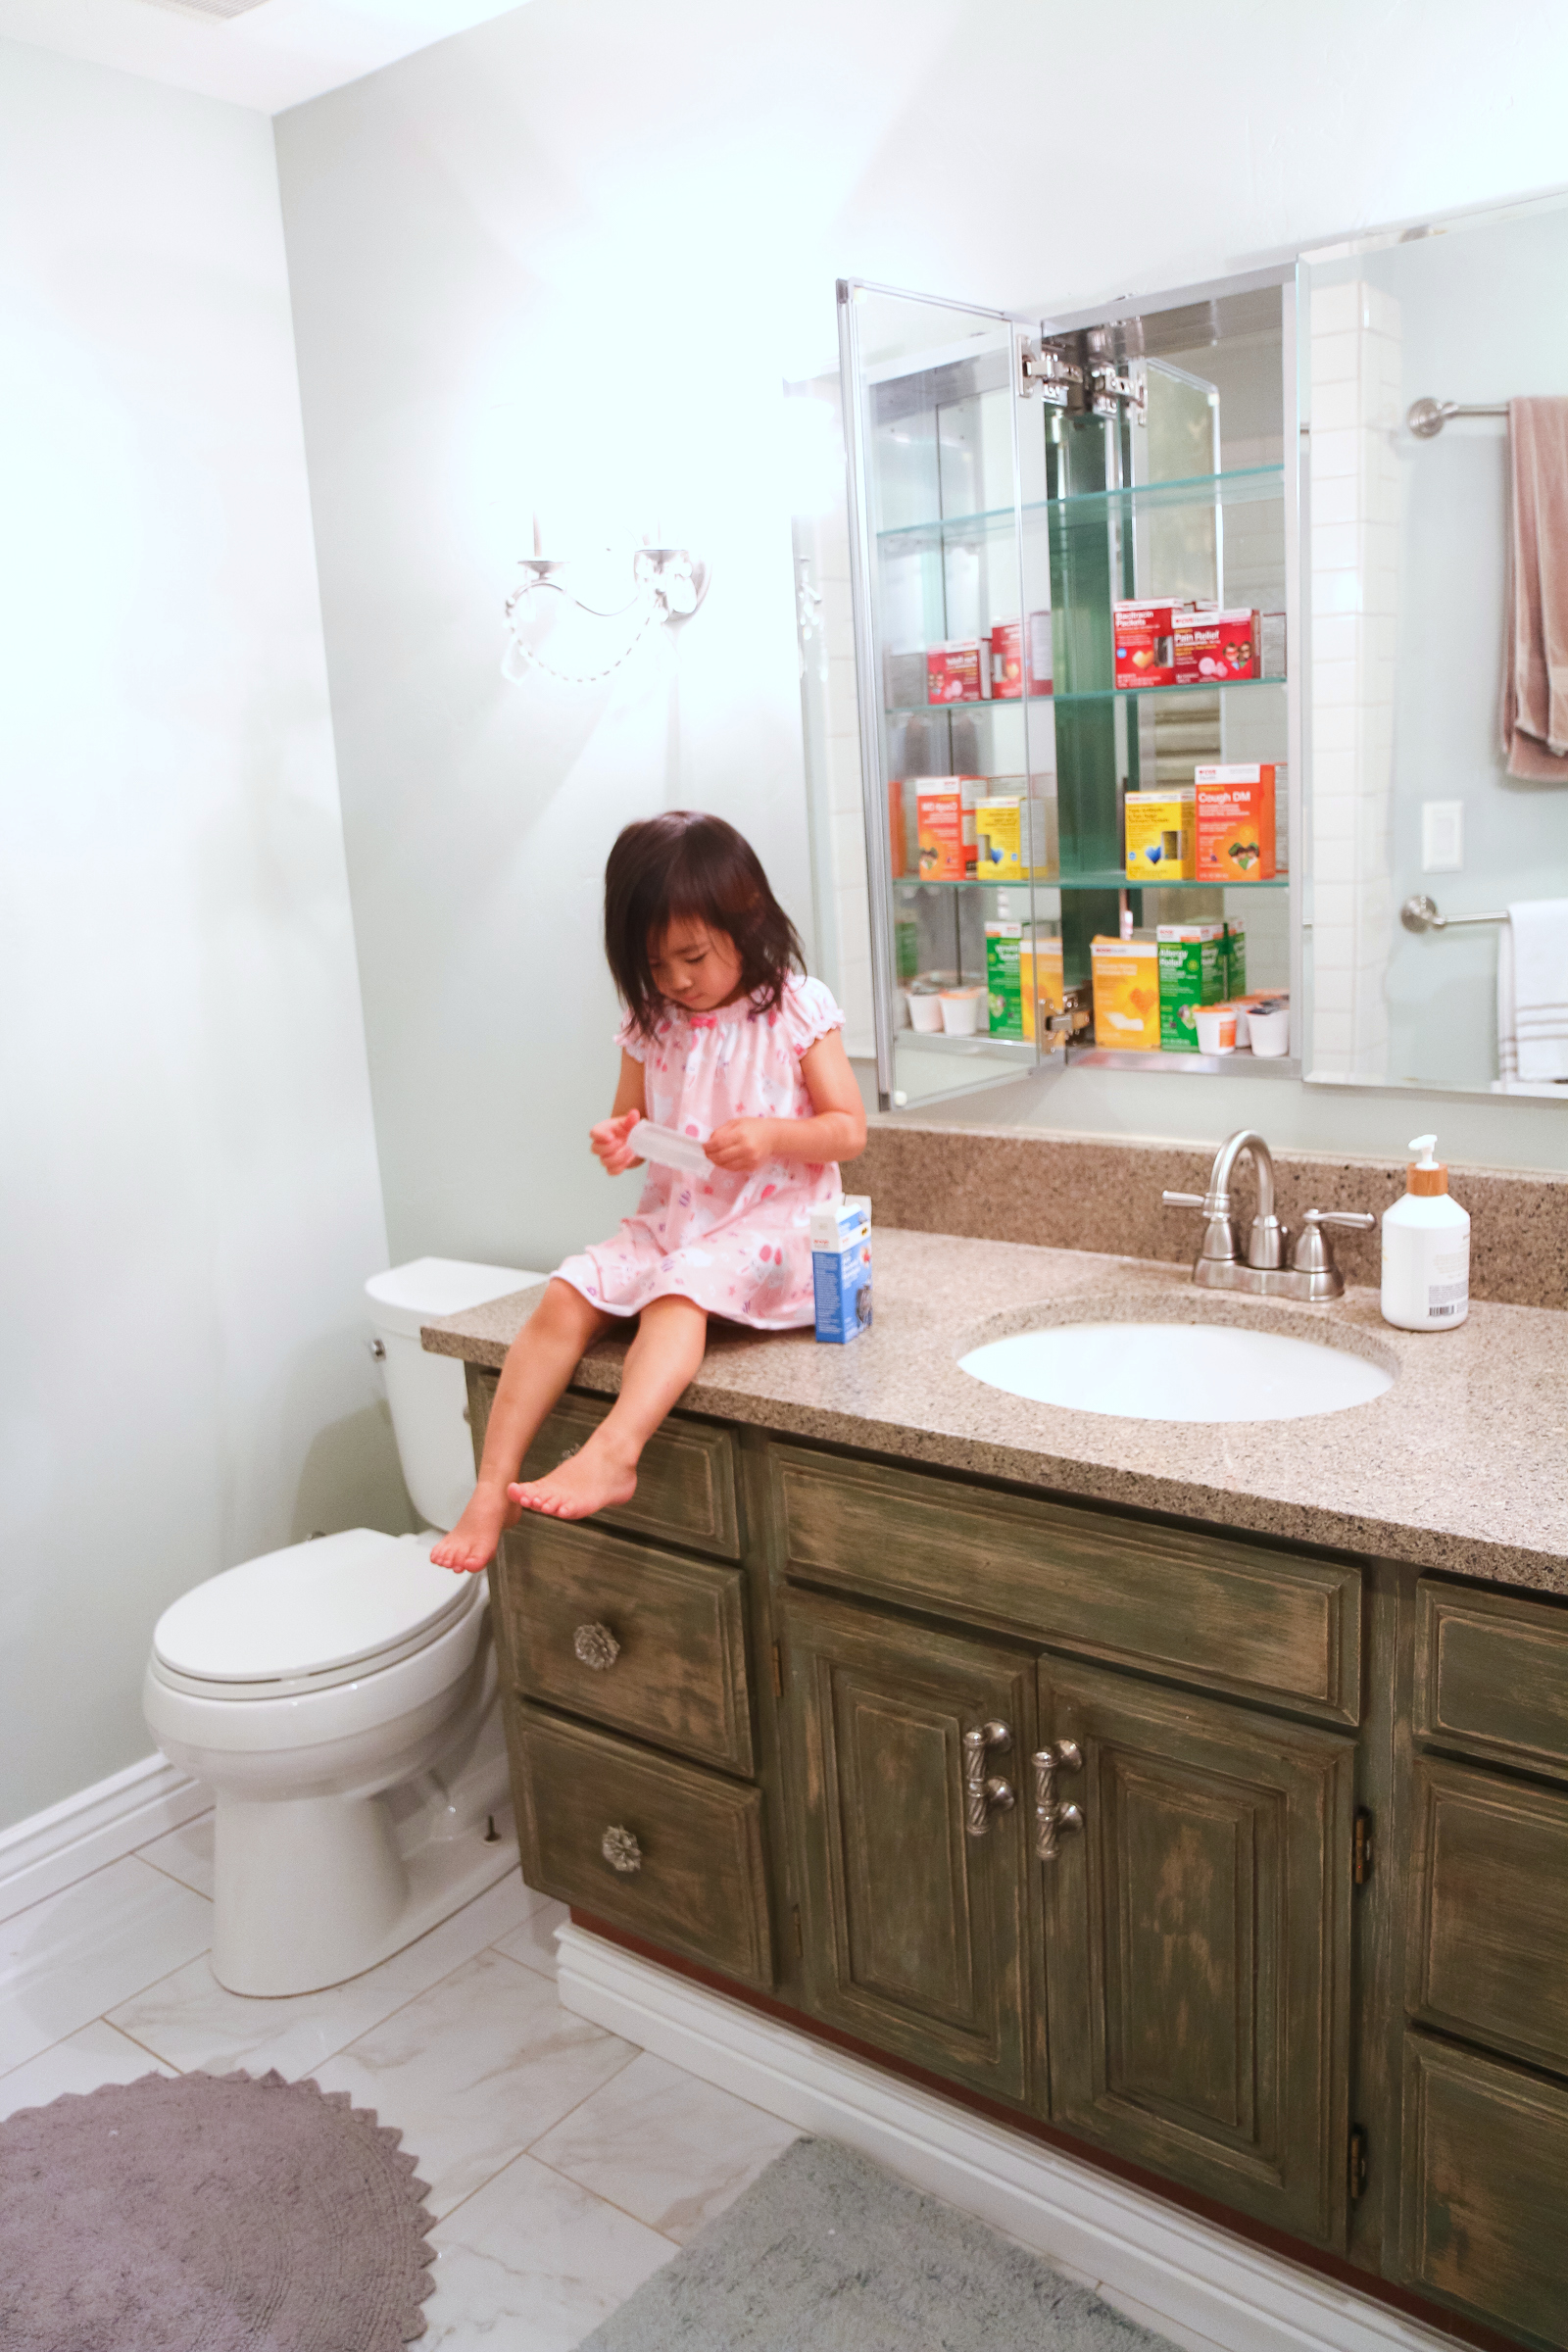 7 Family Medicine Cabinet Essentials by popular Utah blogger Sandy A La Mode